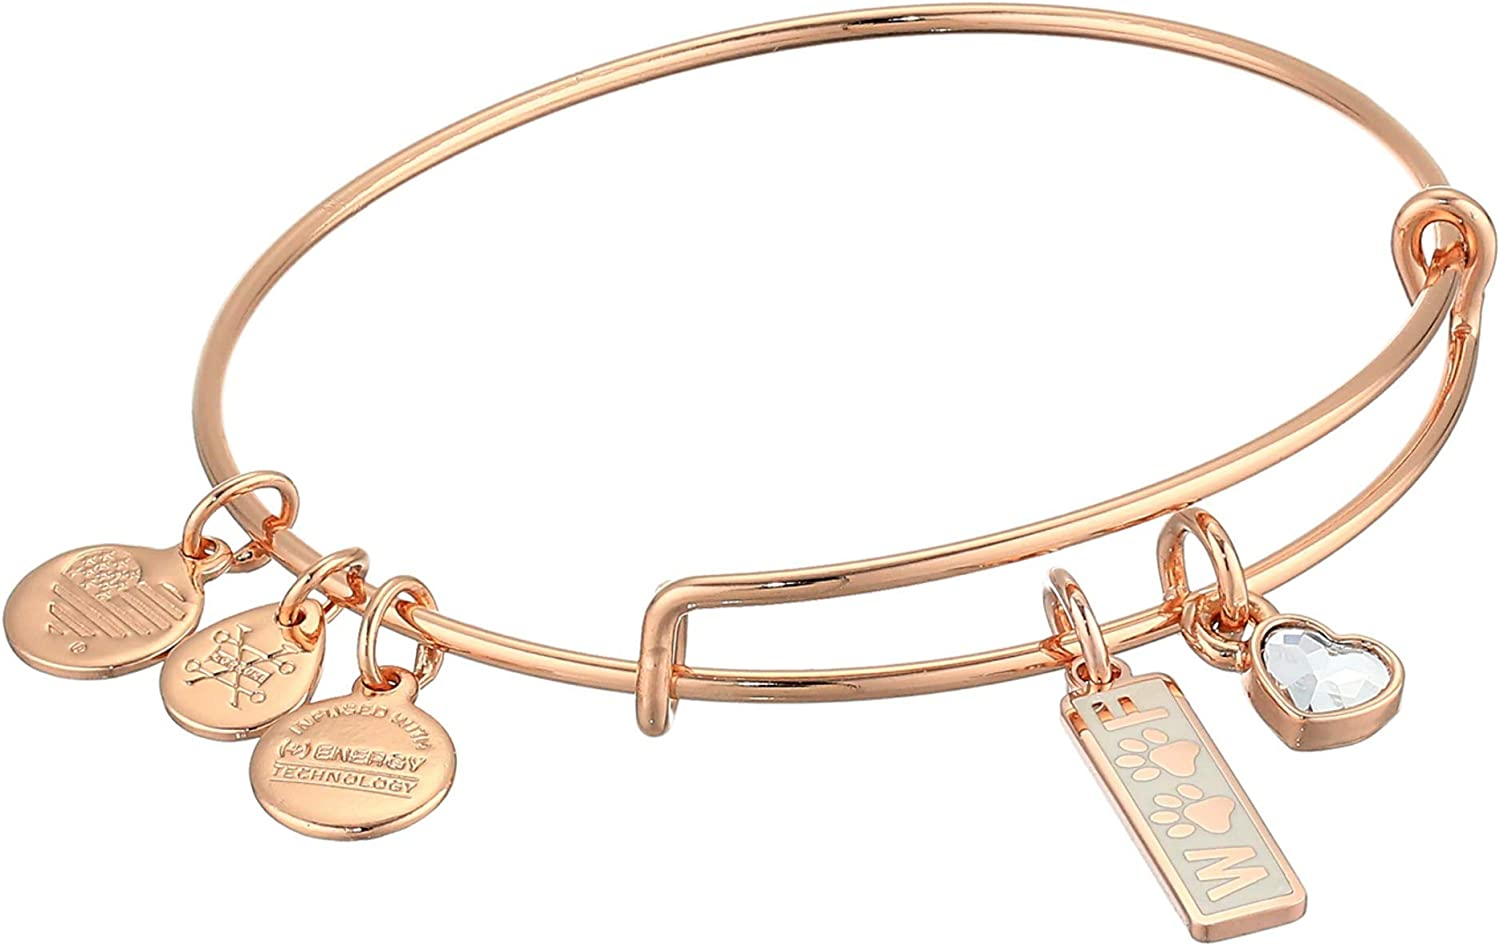 Alex and Ani Beauty products Expandable Wire Bangle Woof for Duo Women Bracelet overseas